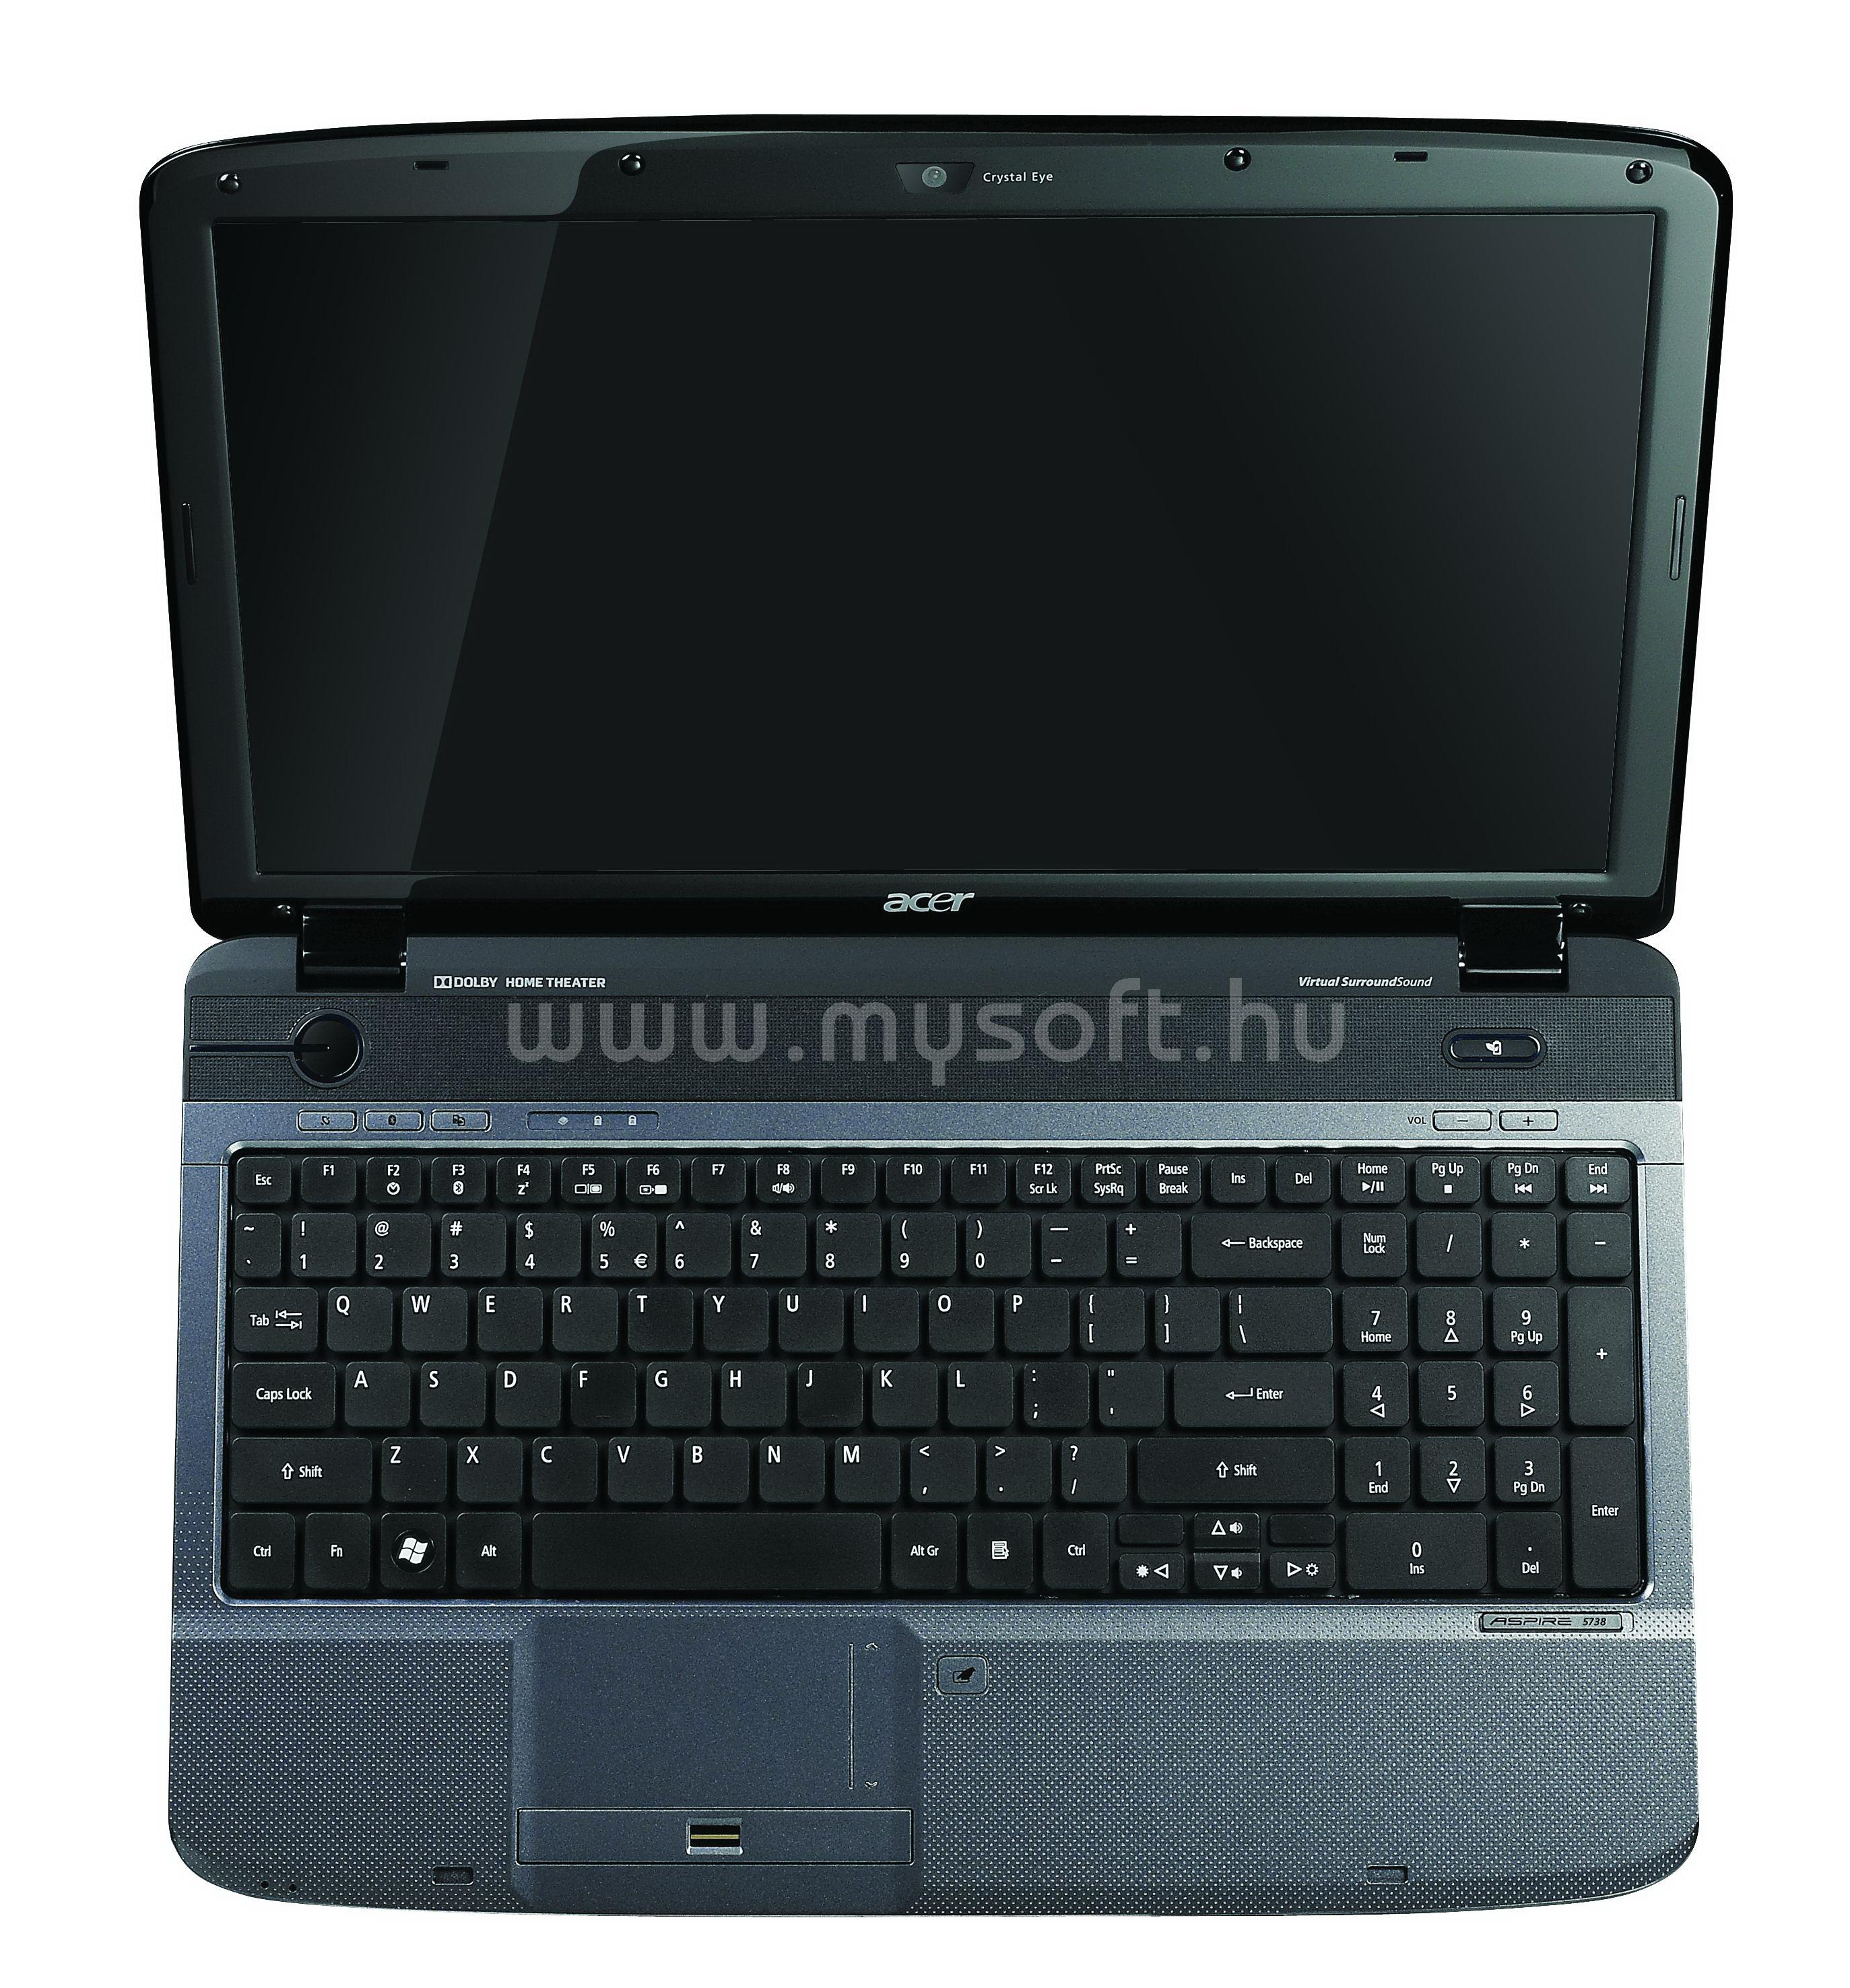 Free Acer Aspire 6930 User Manual